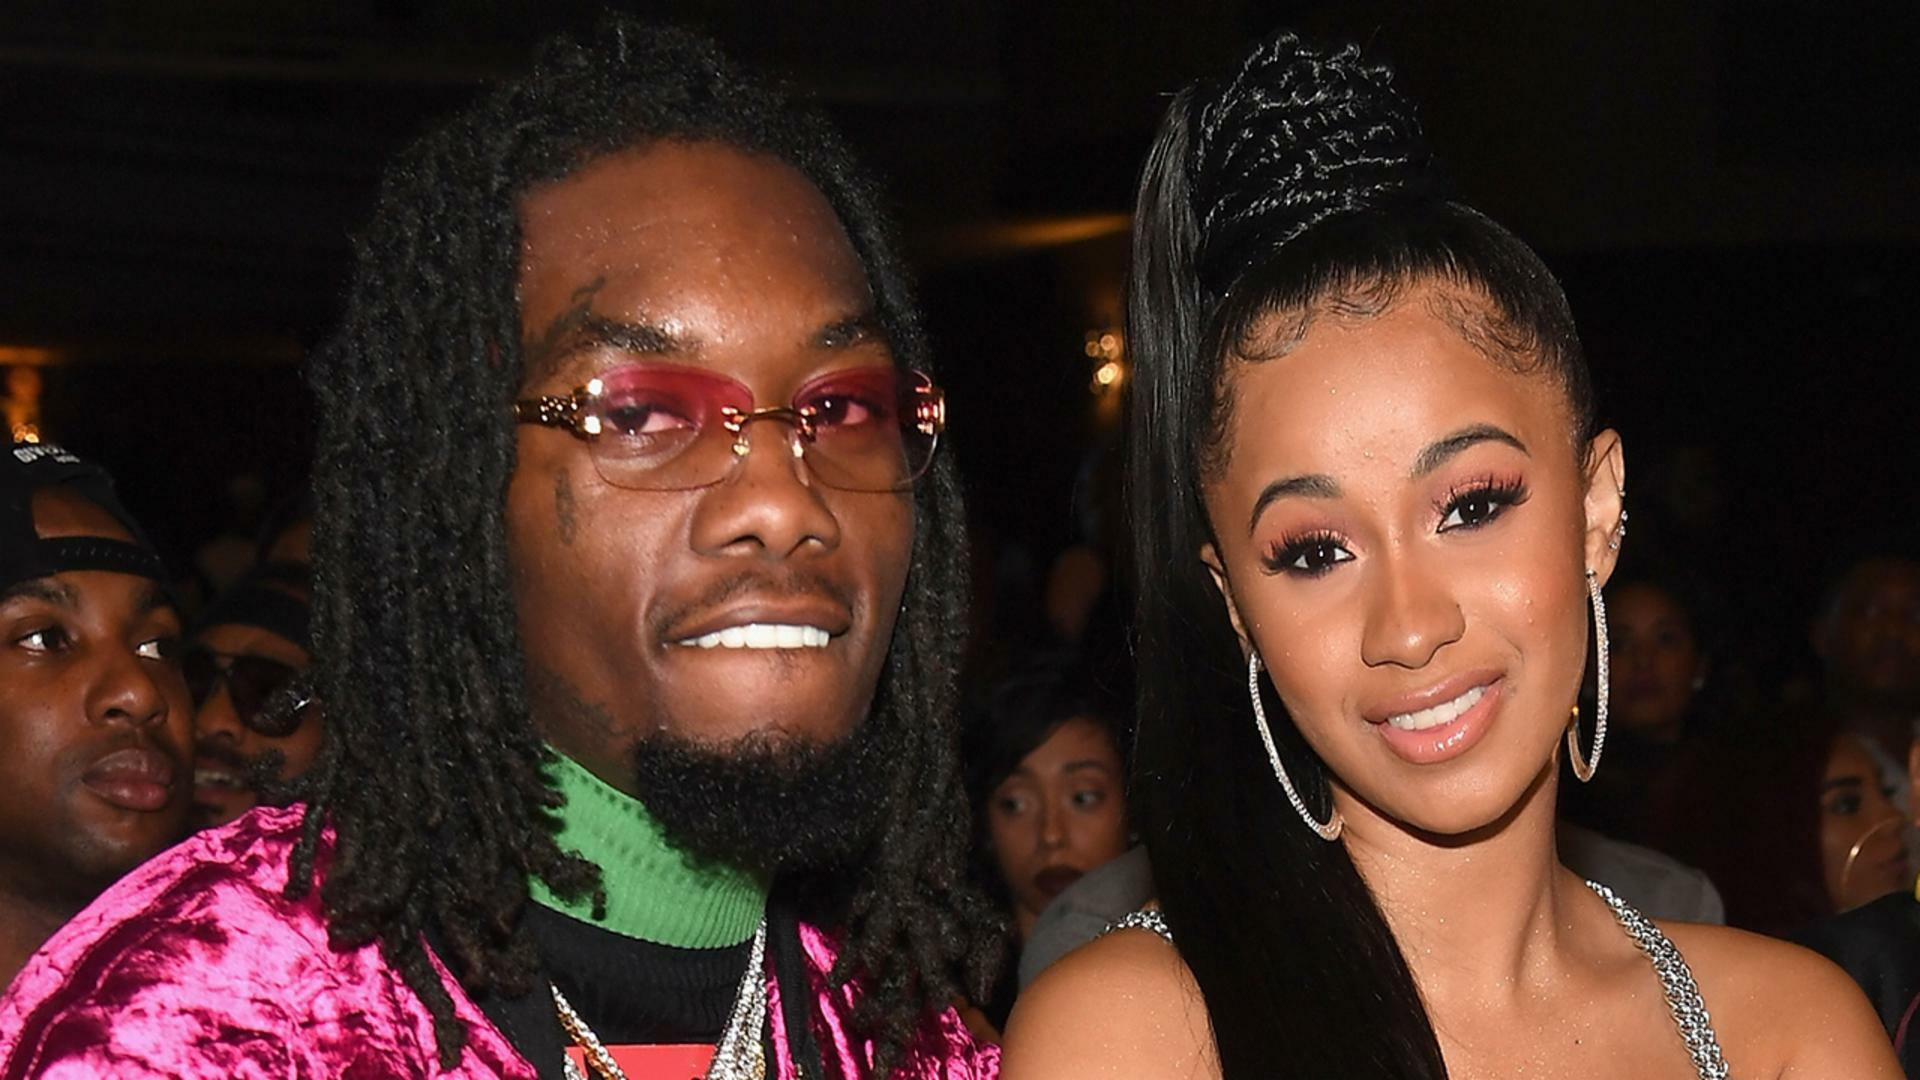 Offset S Is Still Cheating On Cardi B With Some Self: Cardi B Confirms Offset Cheated On Her, But She's Not